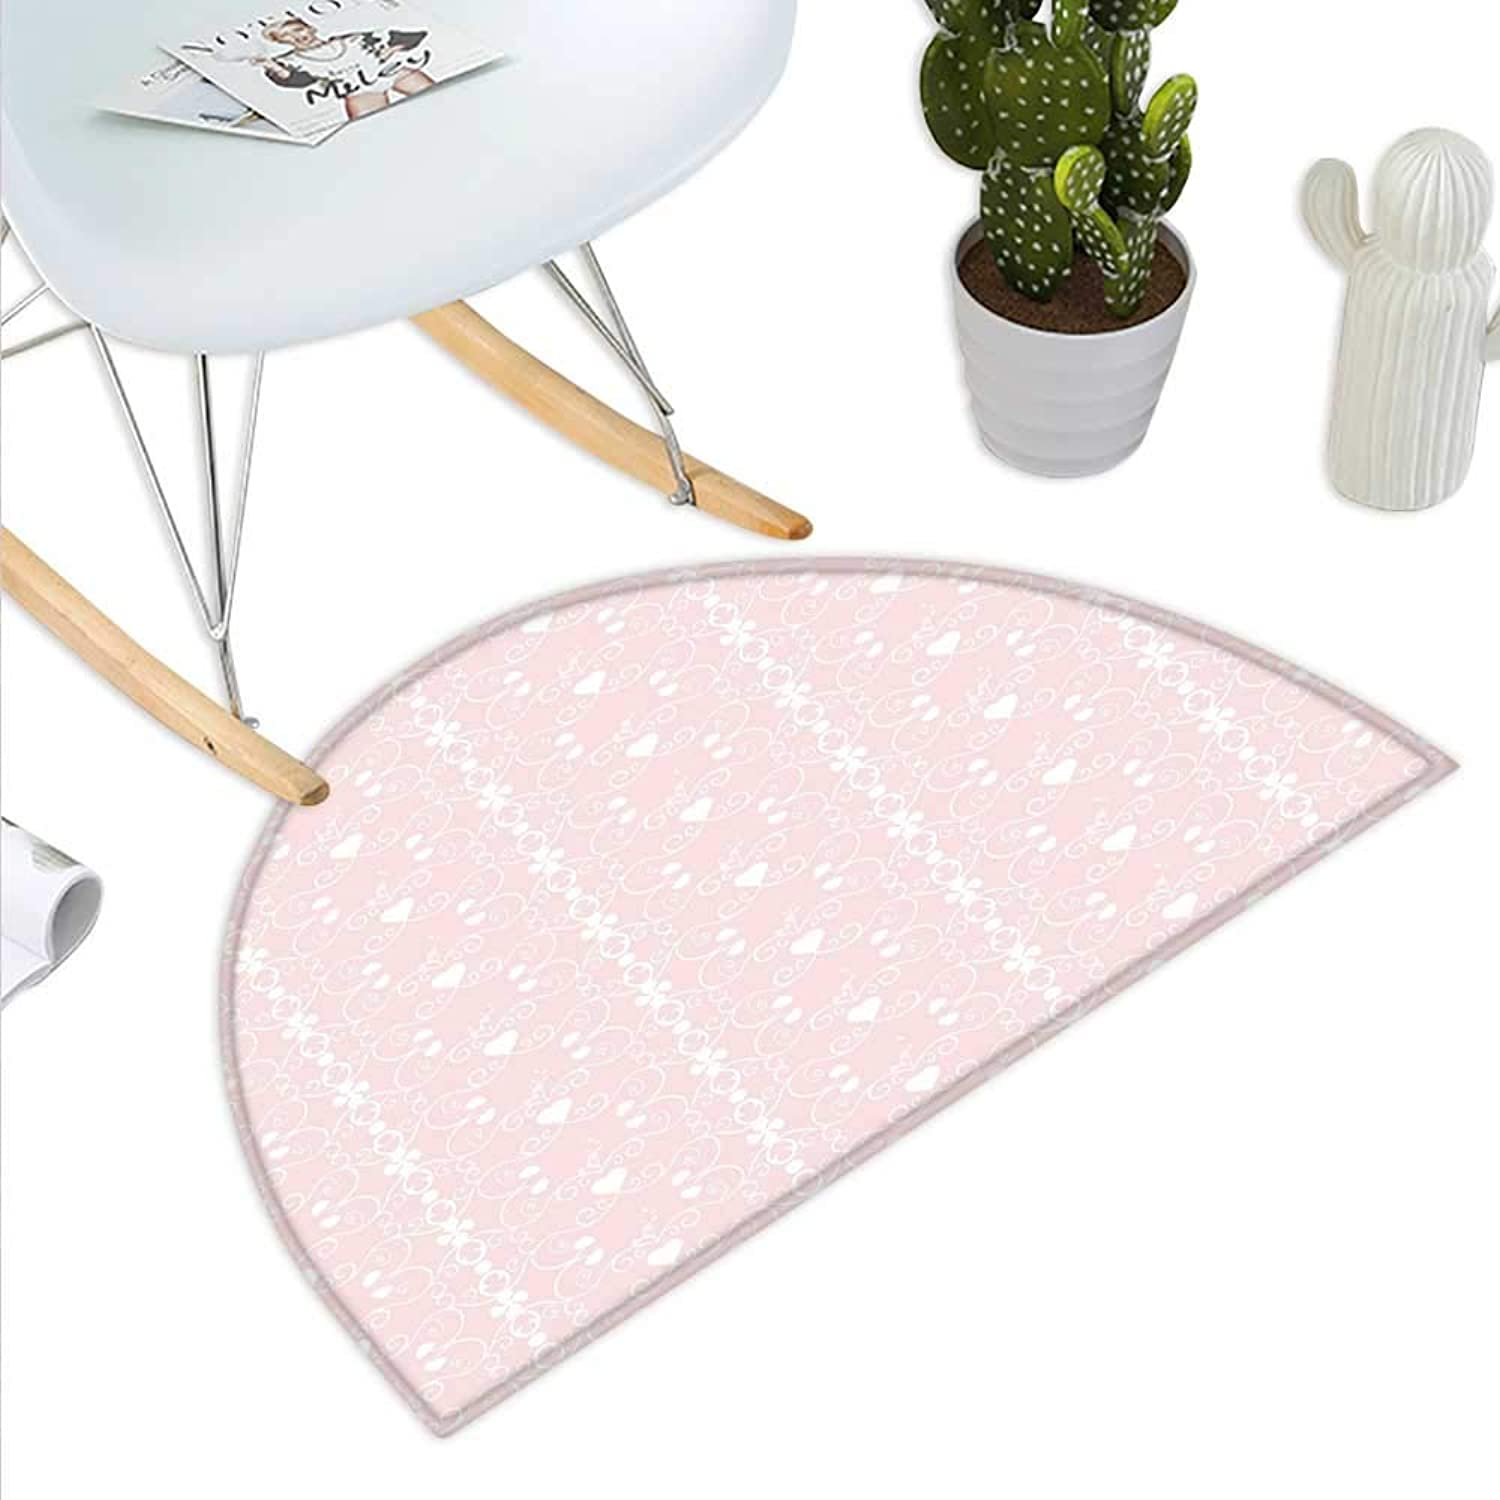 Pink and White Semicircle Doormat Victorian Style Girly Feminine Pattern with Curly Leaves Hearts and Flowers Halfmoon doormats H 39.3  xD 59  bluesh White